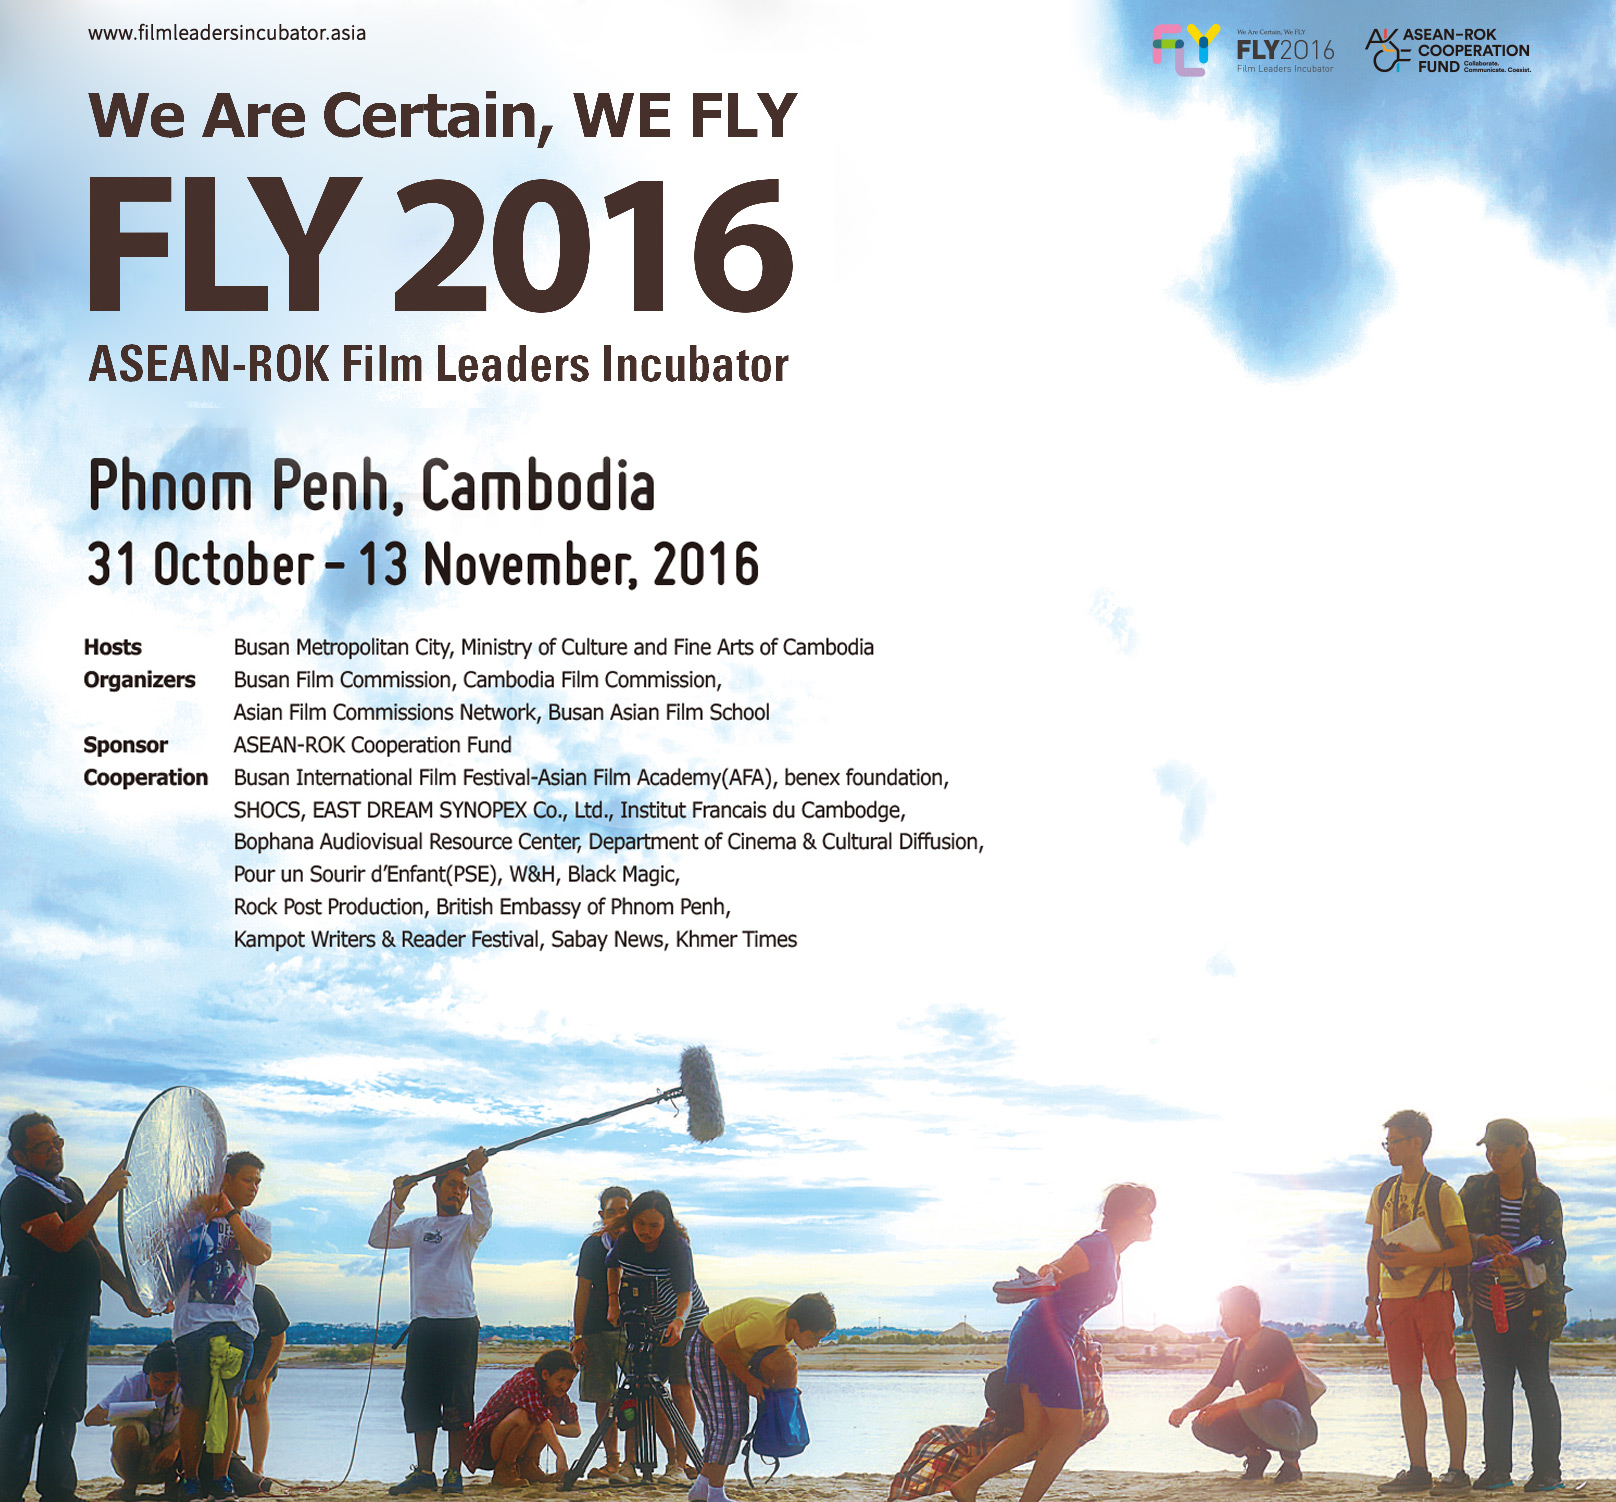 1Recruiting Trainees for ASEAN-ROK Film Leaders Incubator : Fly 2016 in Phnom Penh, Cambodia